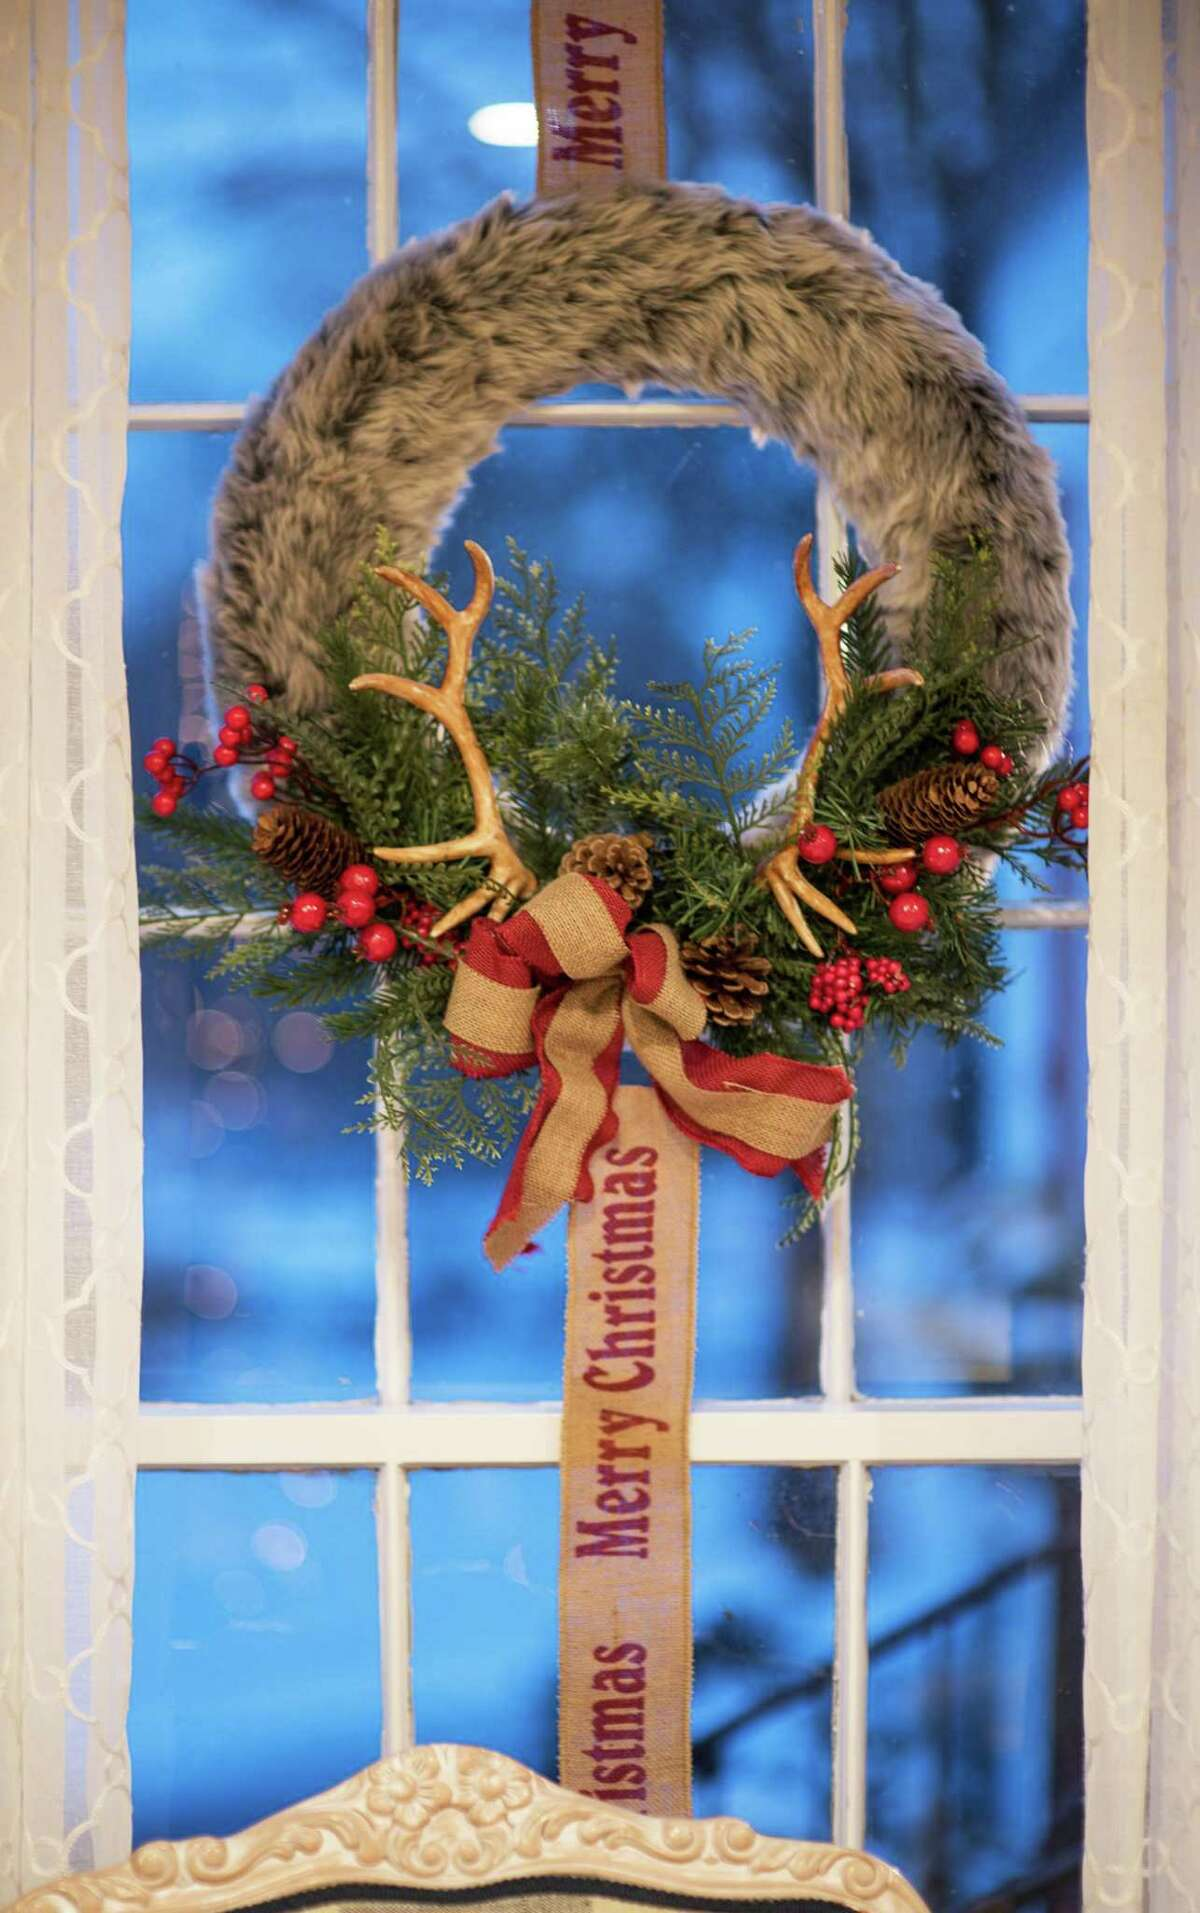 A festive wreath is just one of the many holiday touches in this home.